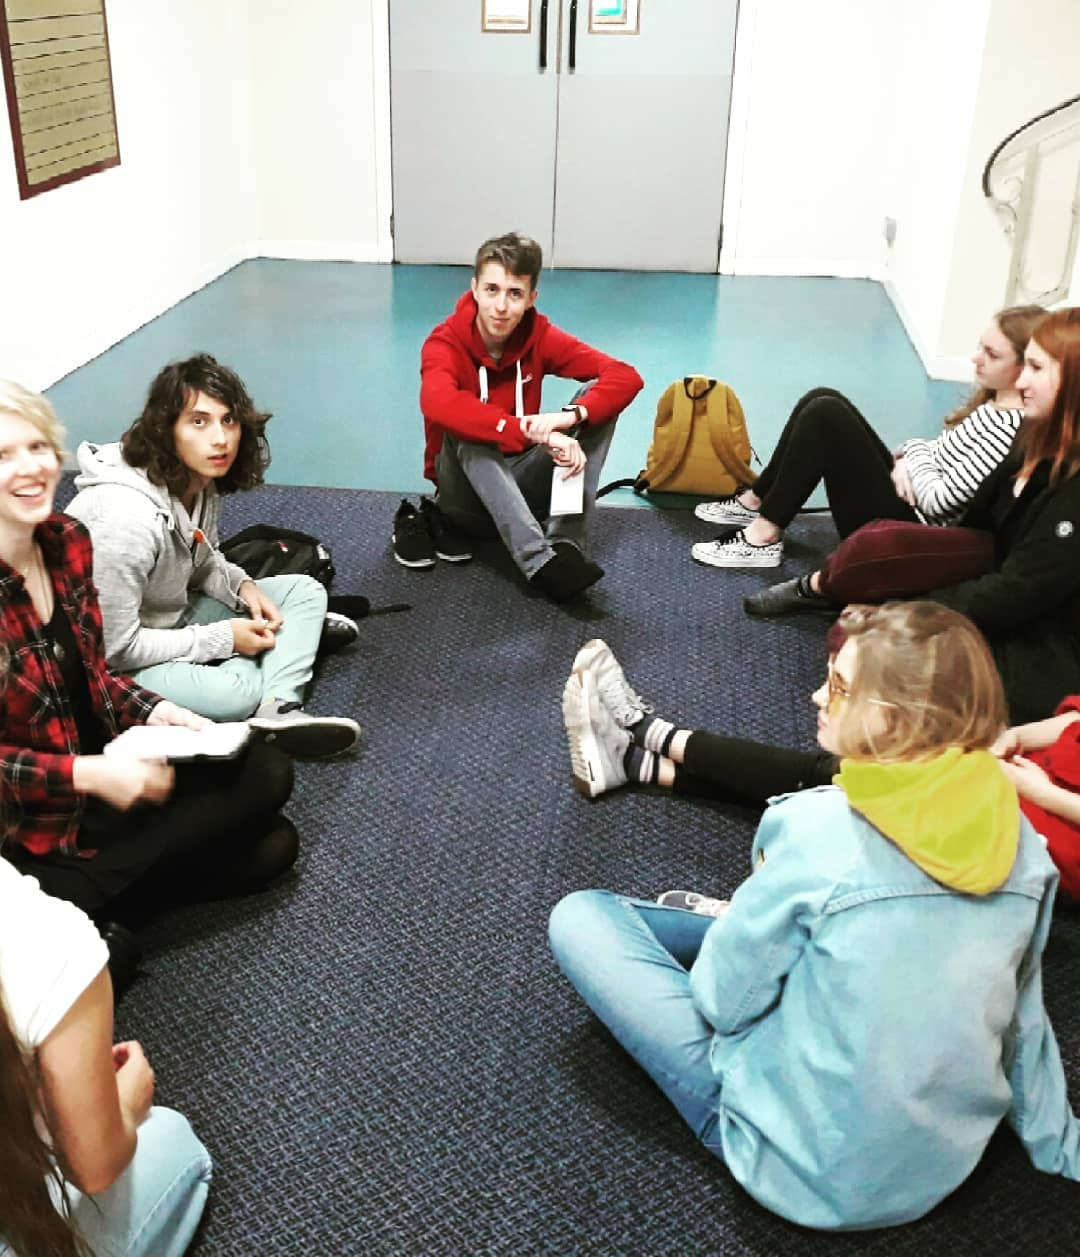 Brainstorming in the corridor; the other group needed the room we'd booked to shoot Forking Hell